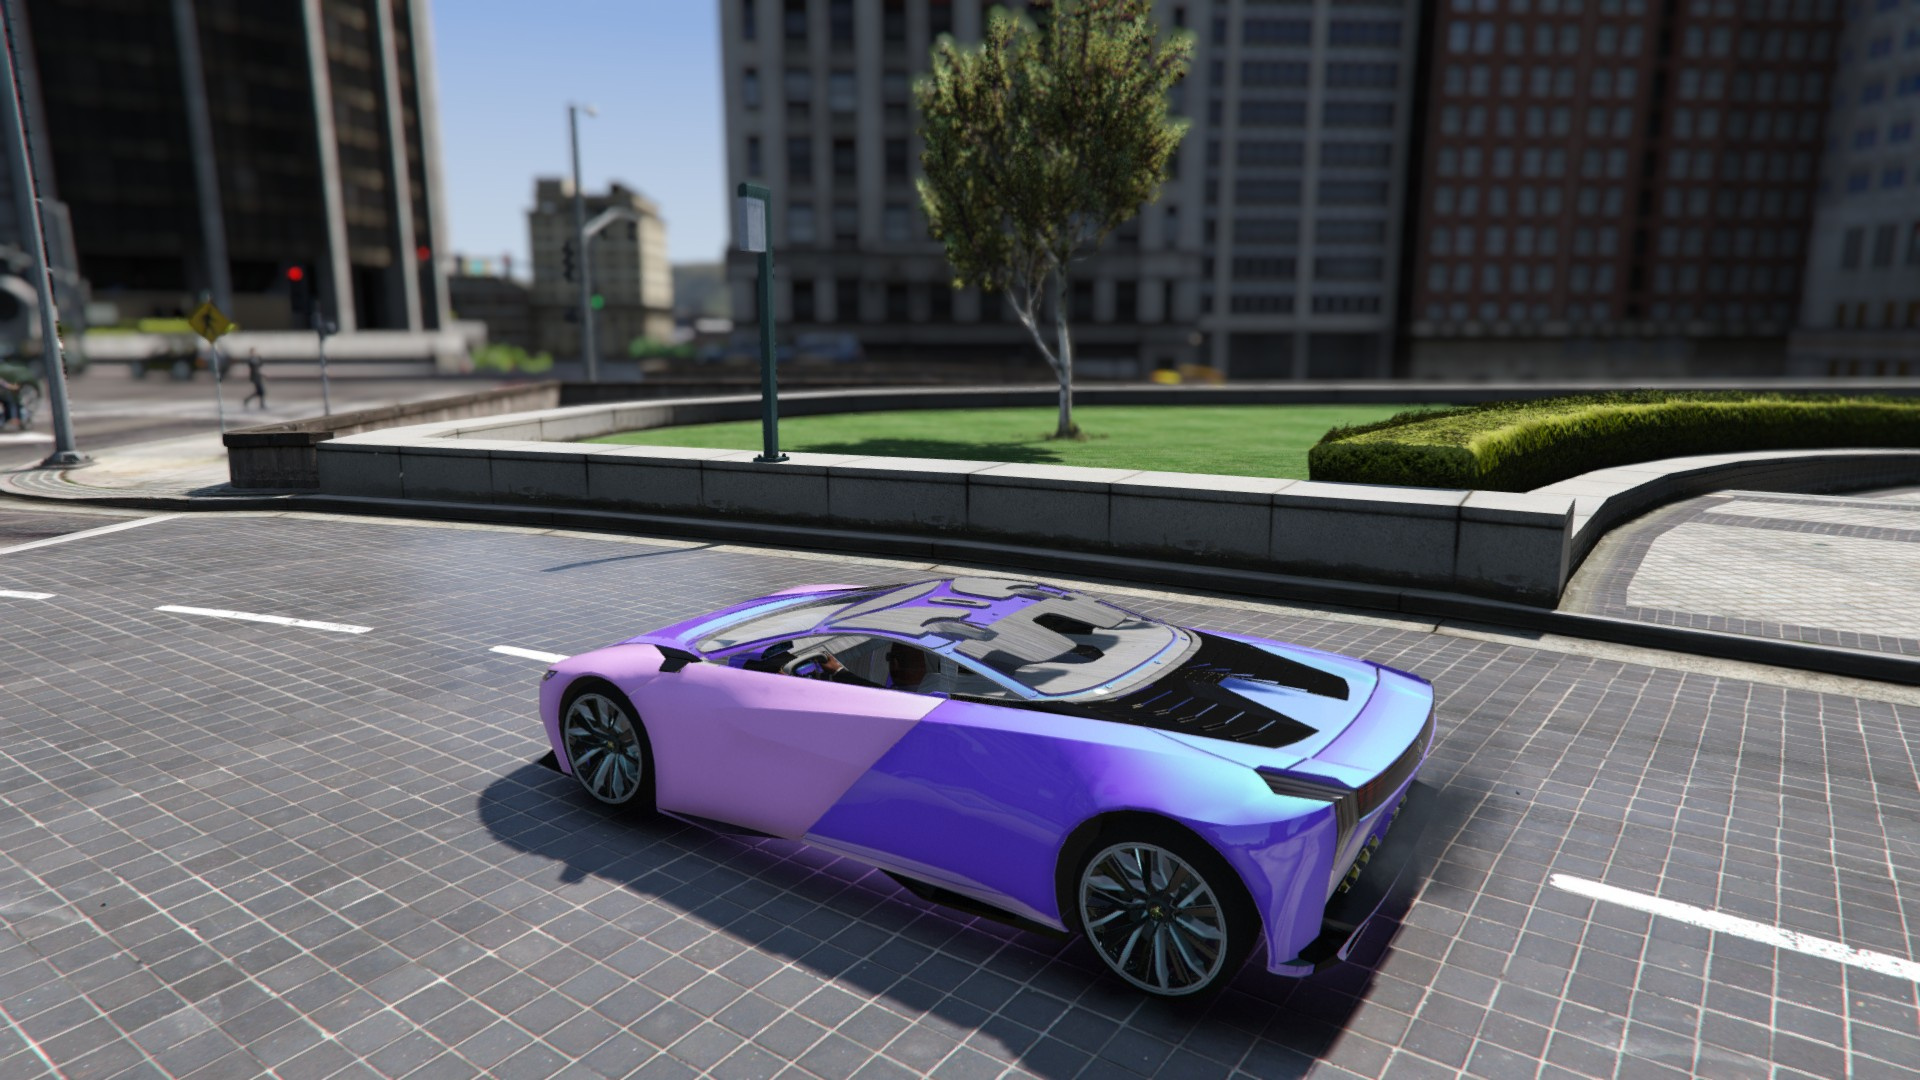 Peugeot Onyx [Add-On / Replace | Auto Spoiler] - GTA5-Mods.com